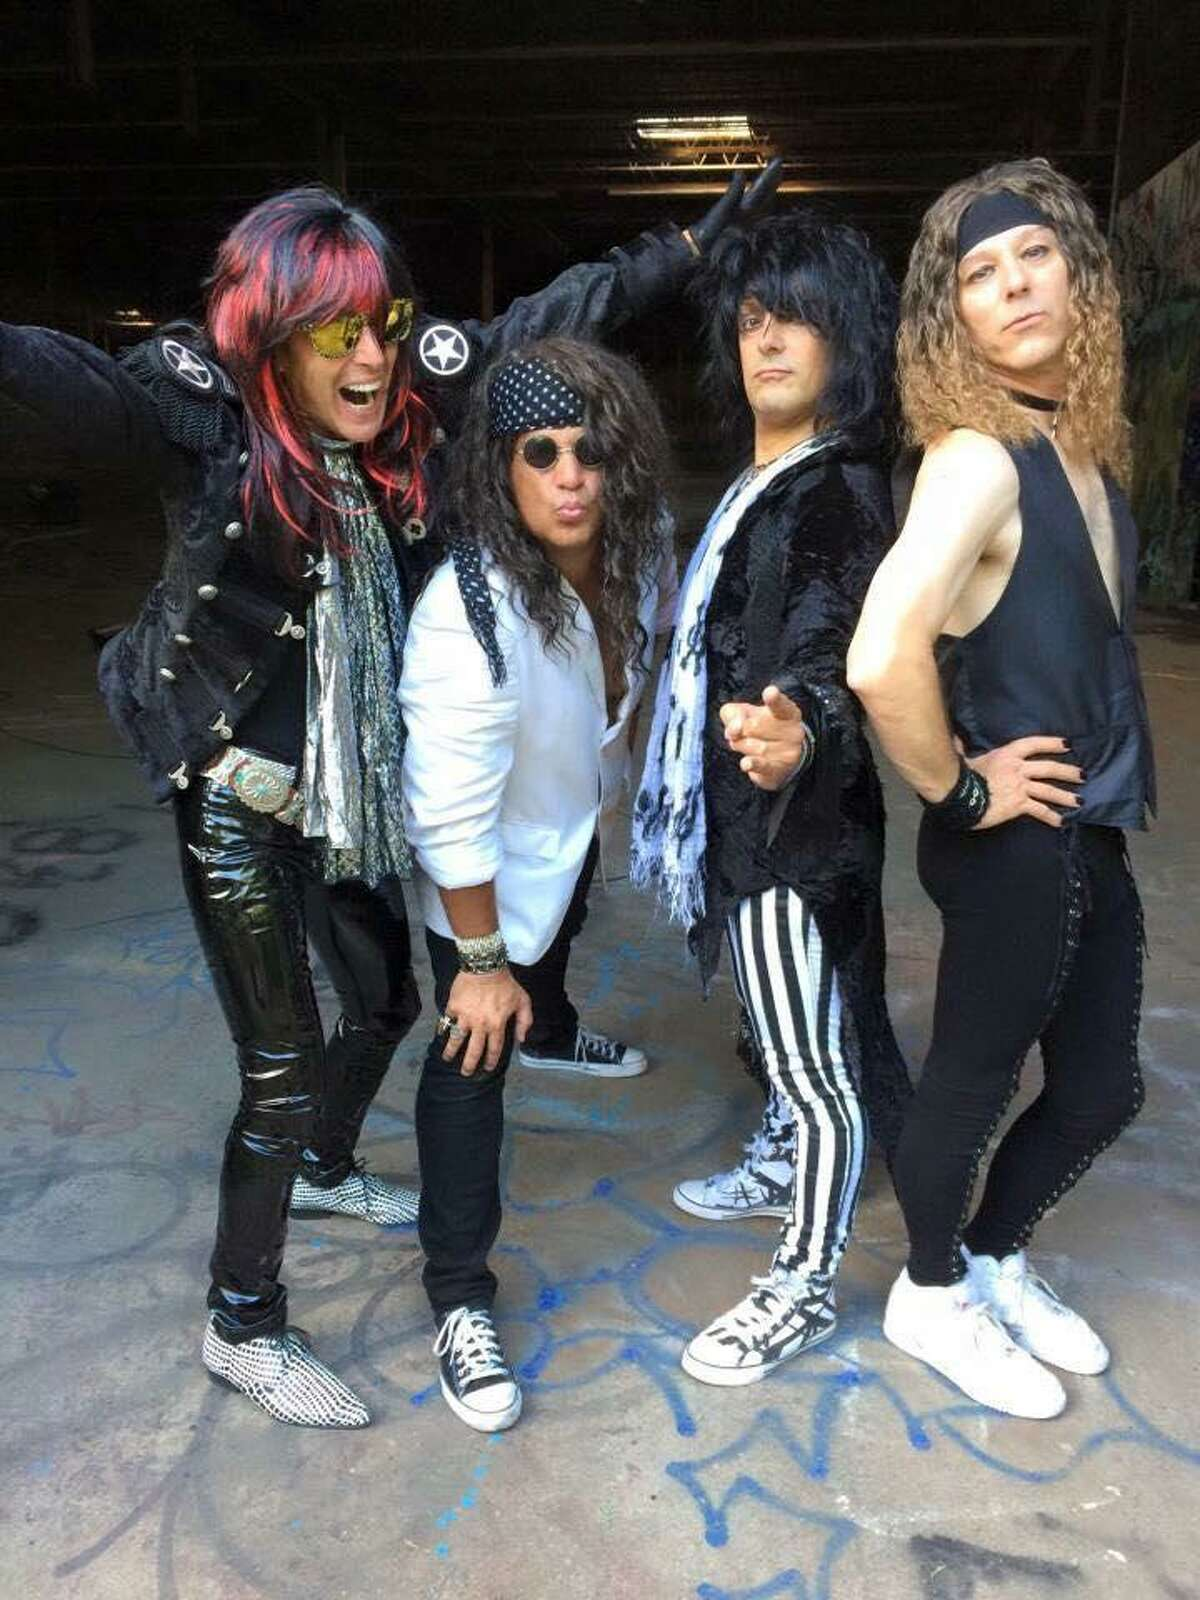 The hair band Mullett performs Friday at the Fairfield Theatre Company's Warehouse. Find out more.